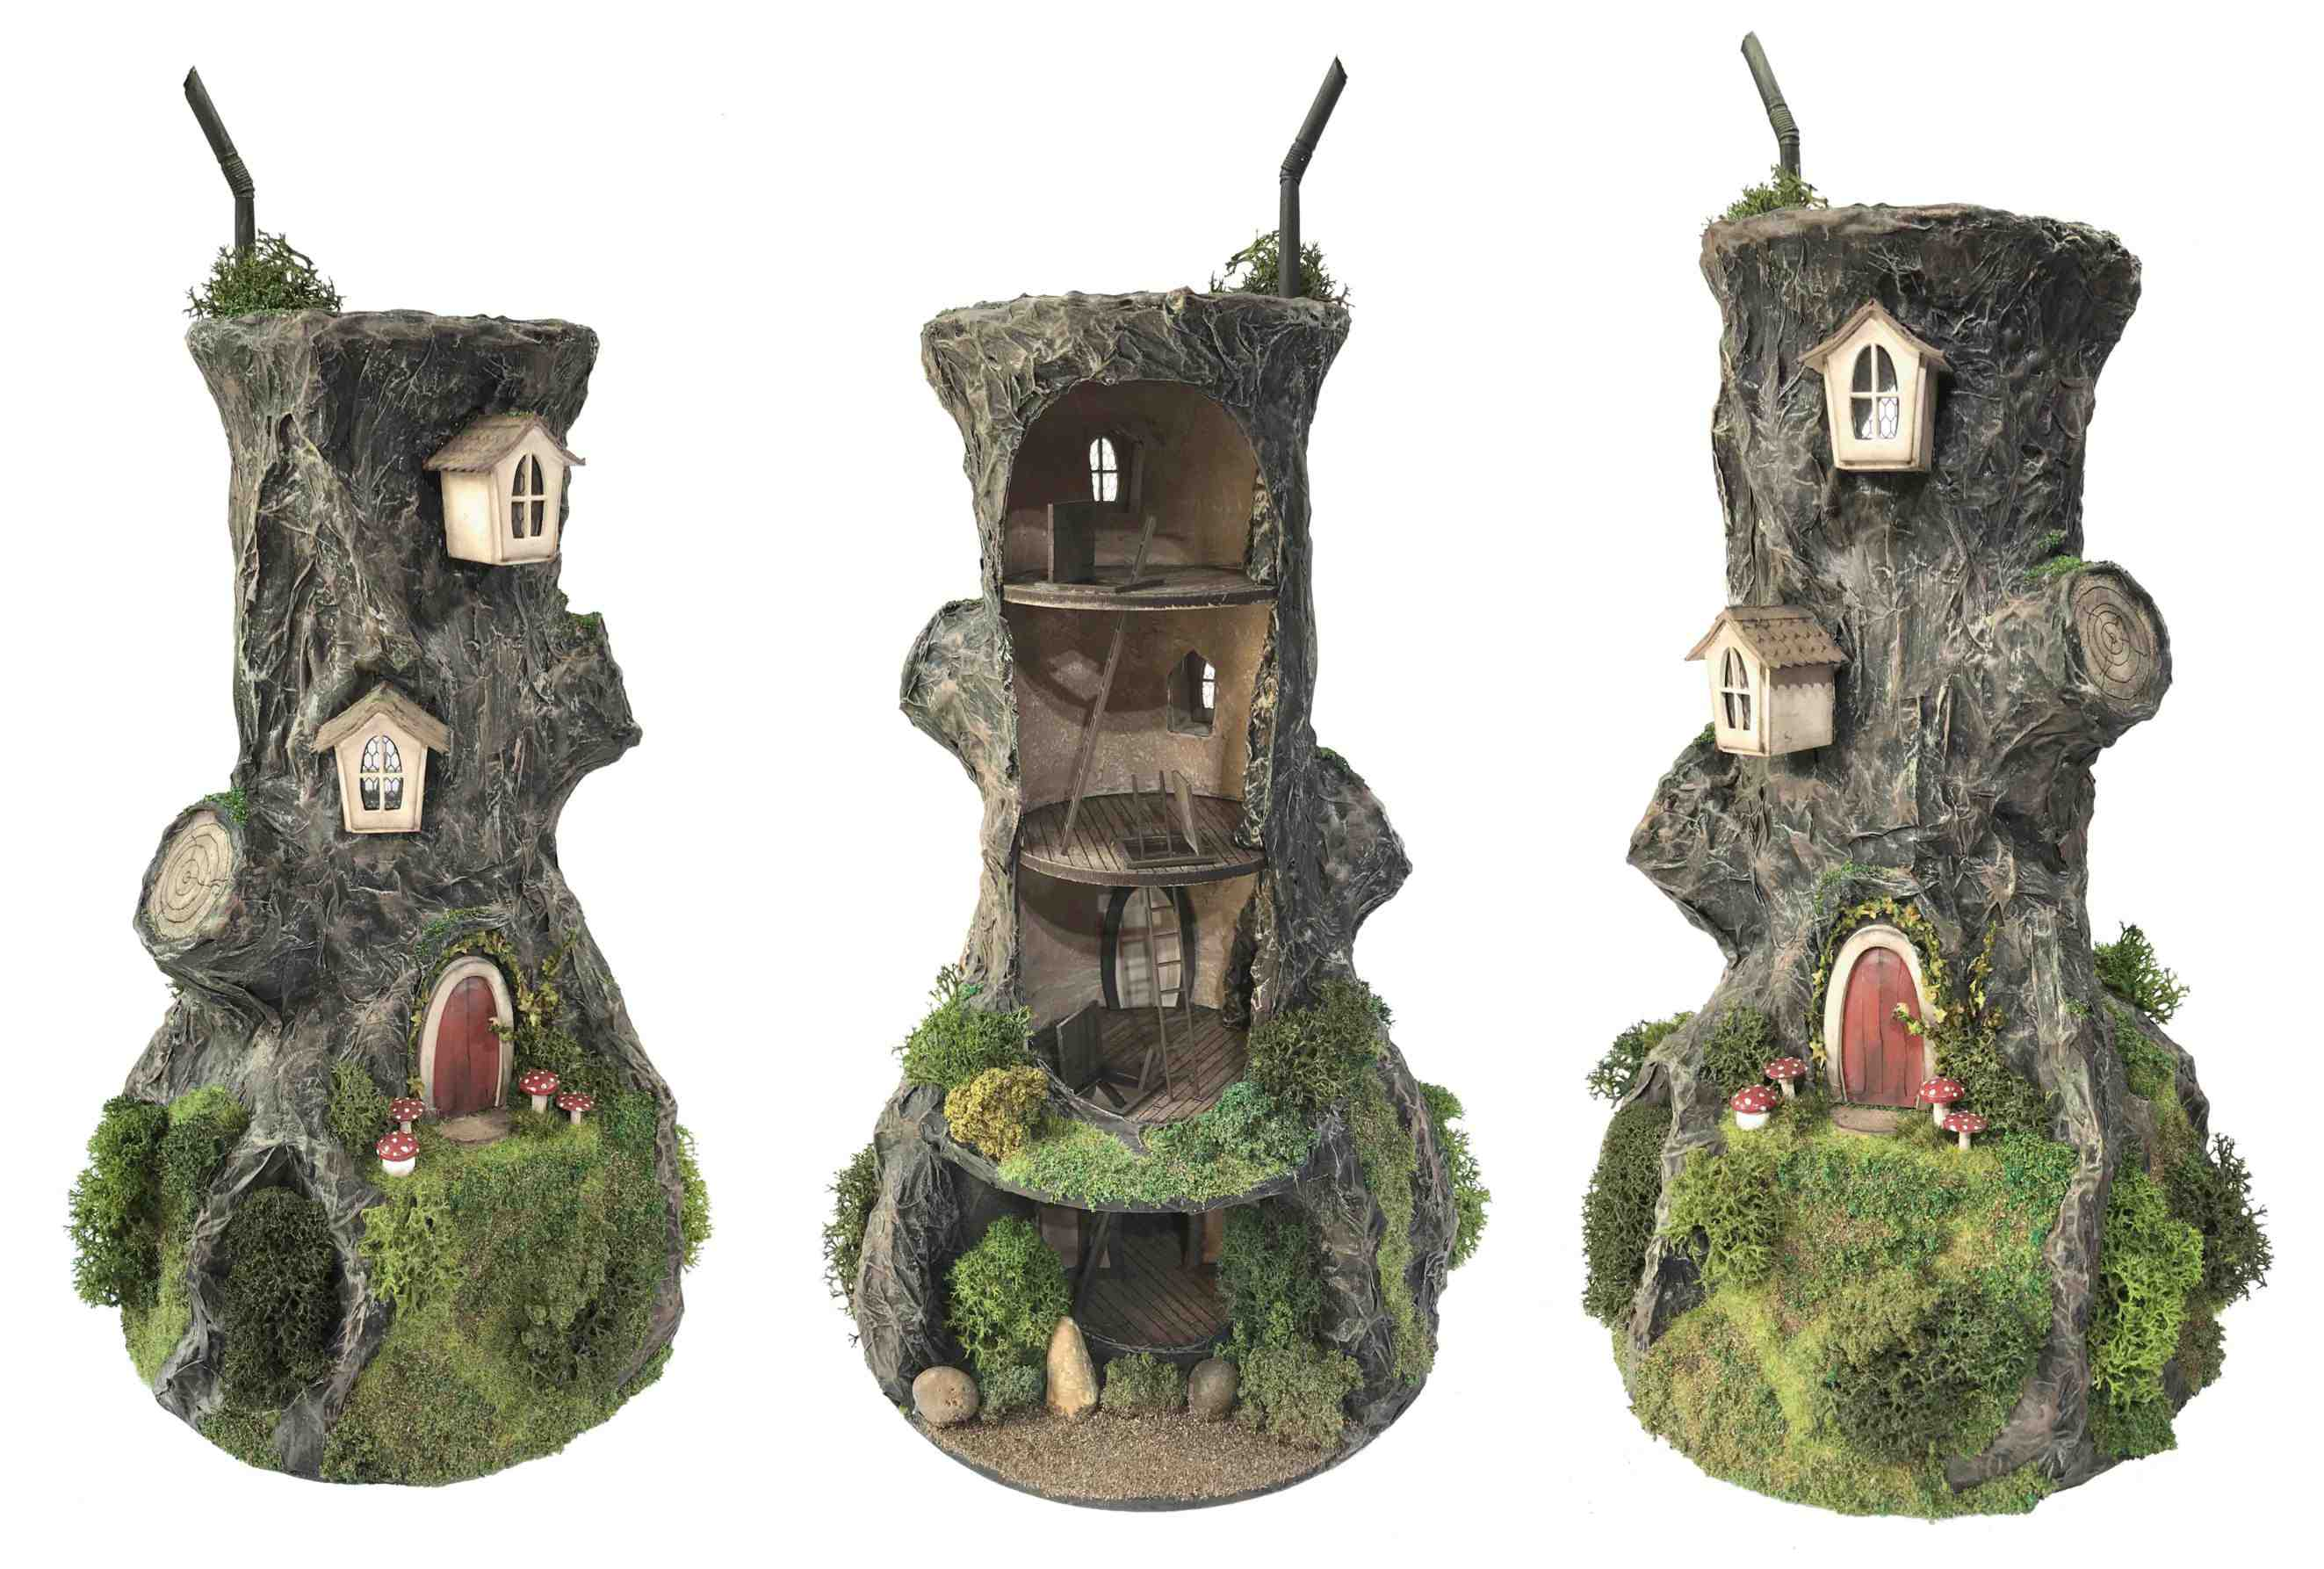 The Little Stump House